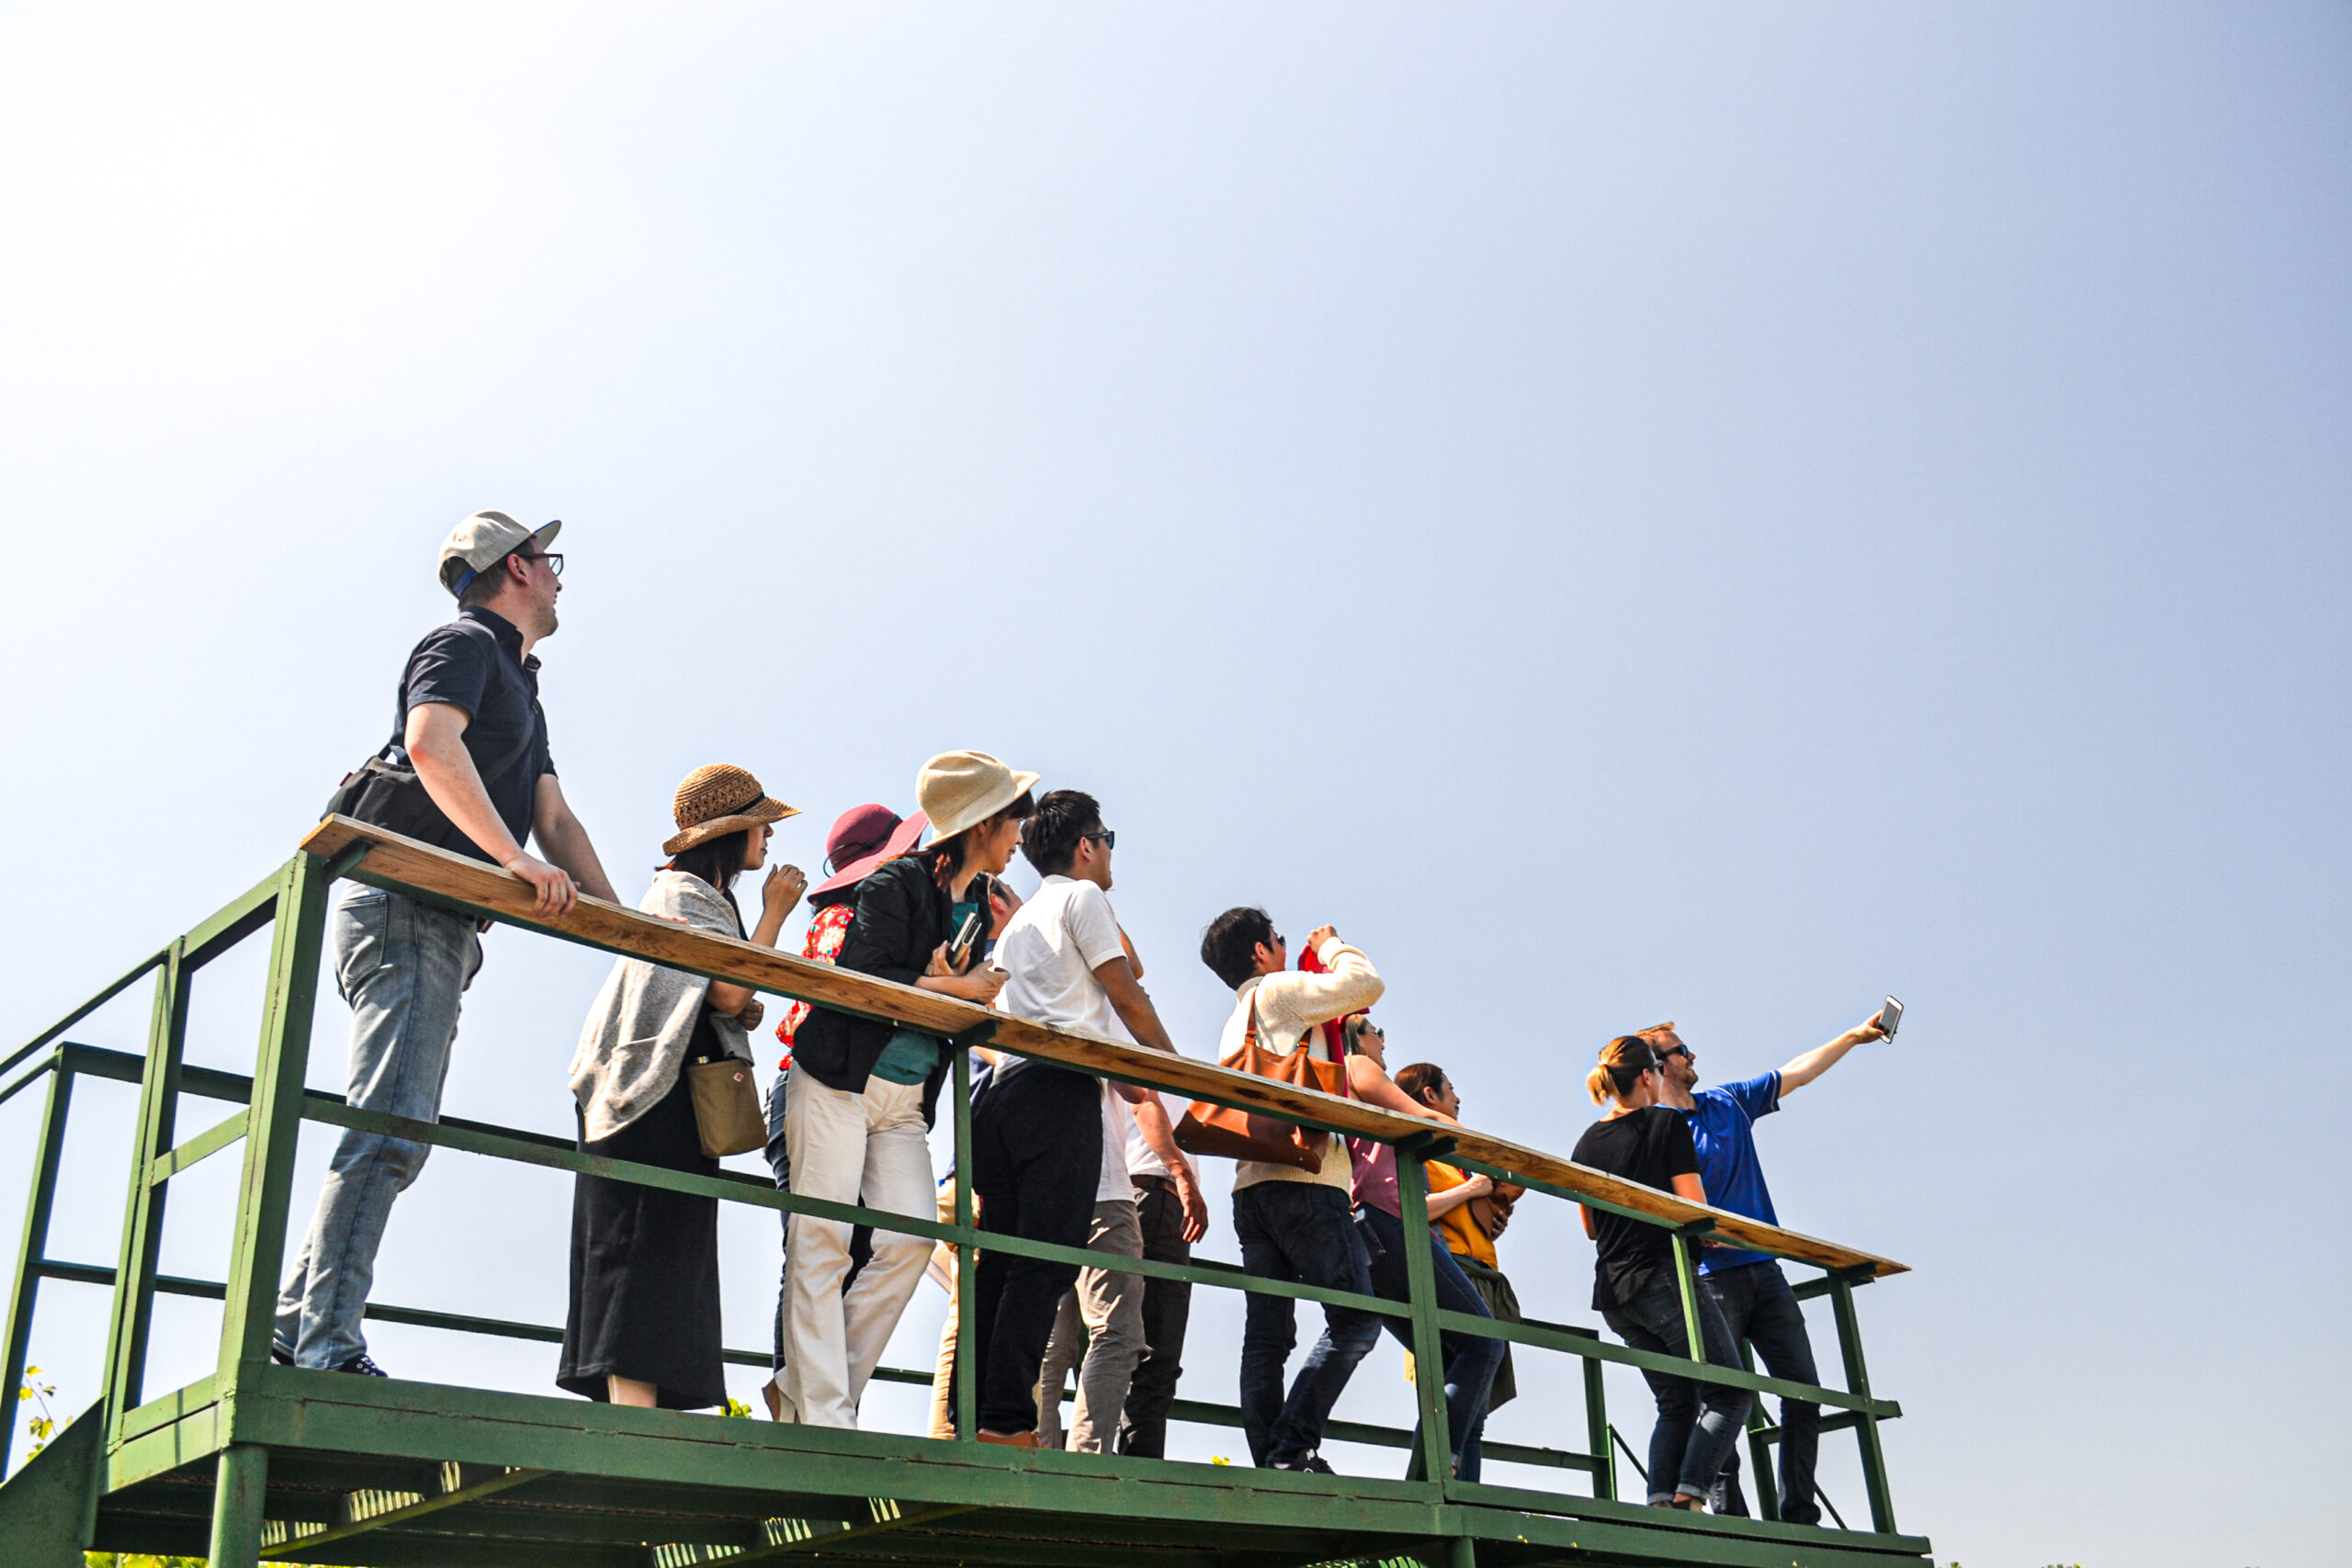 12 people in sun hats and with bags stand on a green platform looking at the man at the right end taking a photo with a mobile phone. The background is the pale blue sky.